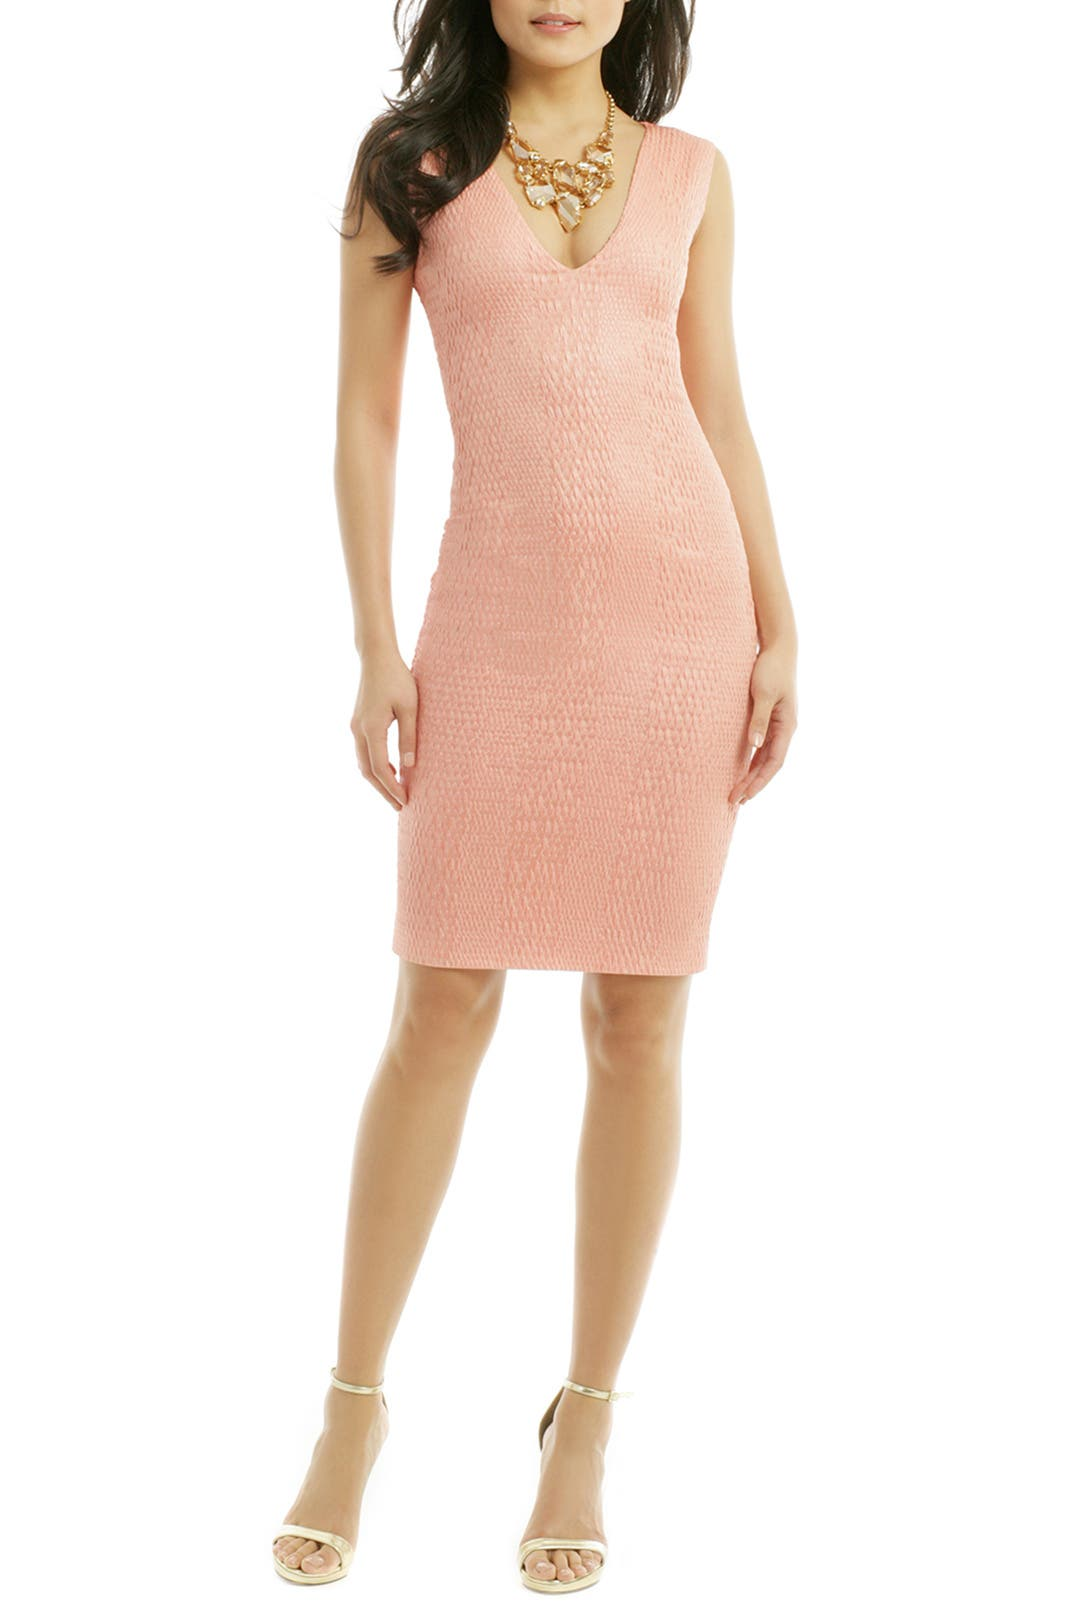 Coral Sun Skies Sheath by Christian Siriano